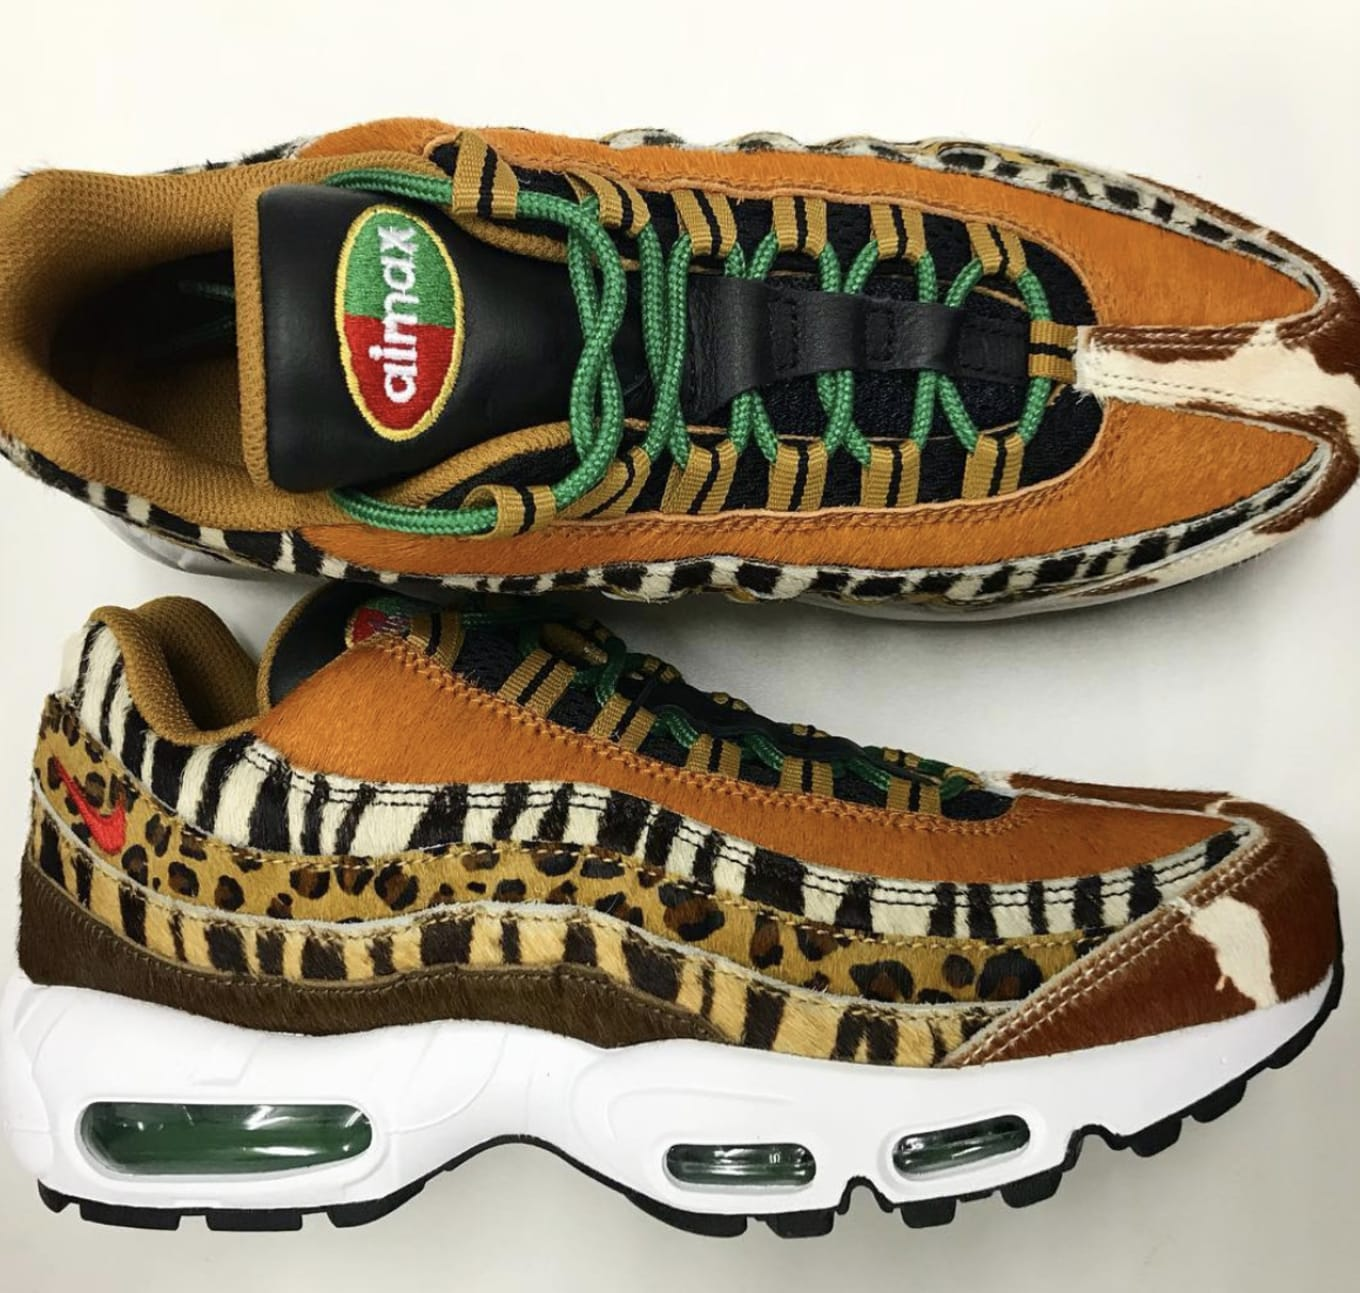 atmos x Nike Air Max Animal Pack 2.0 Arriving In 2018